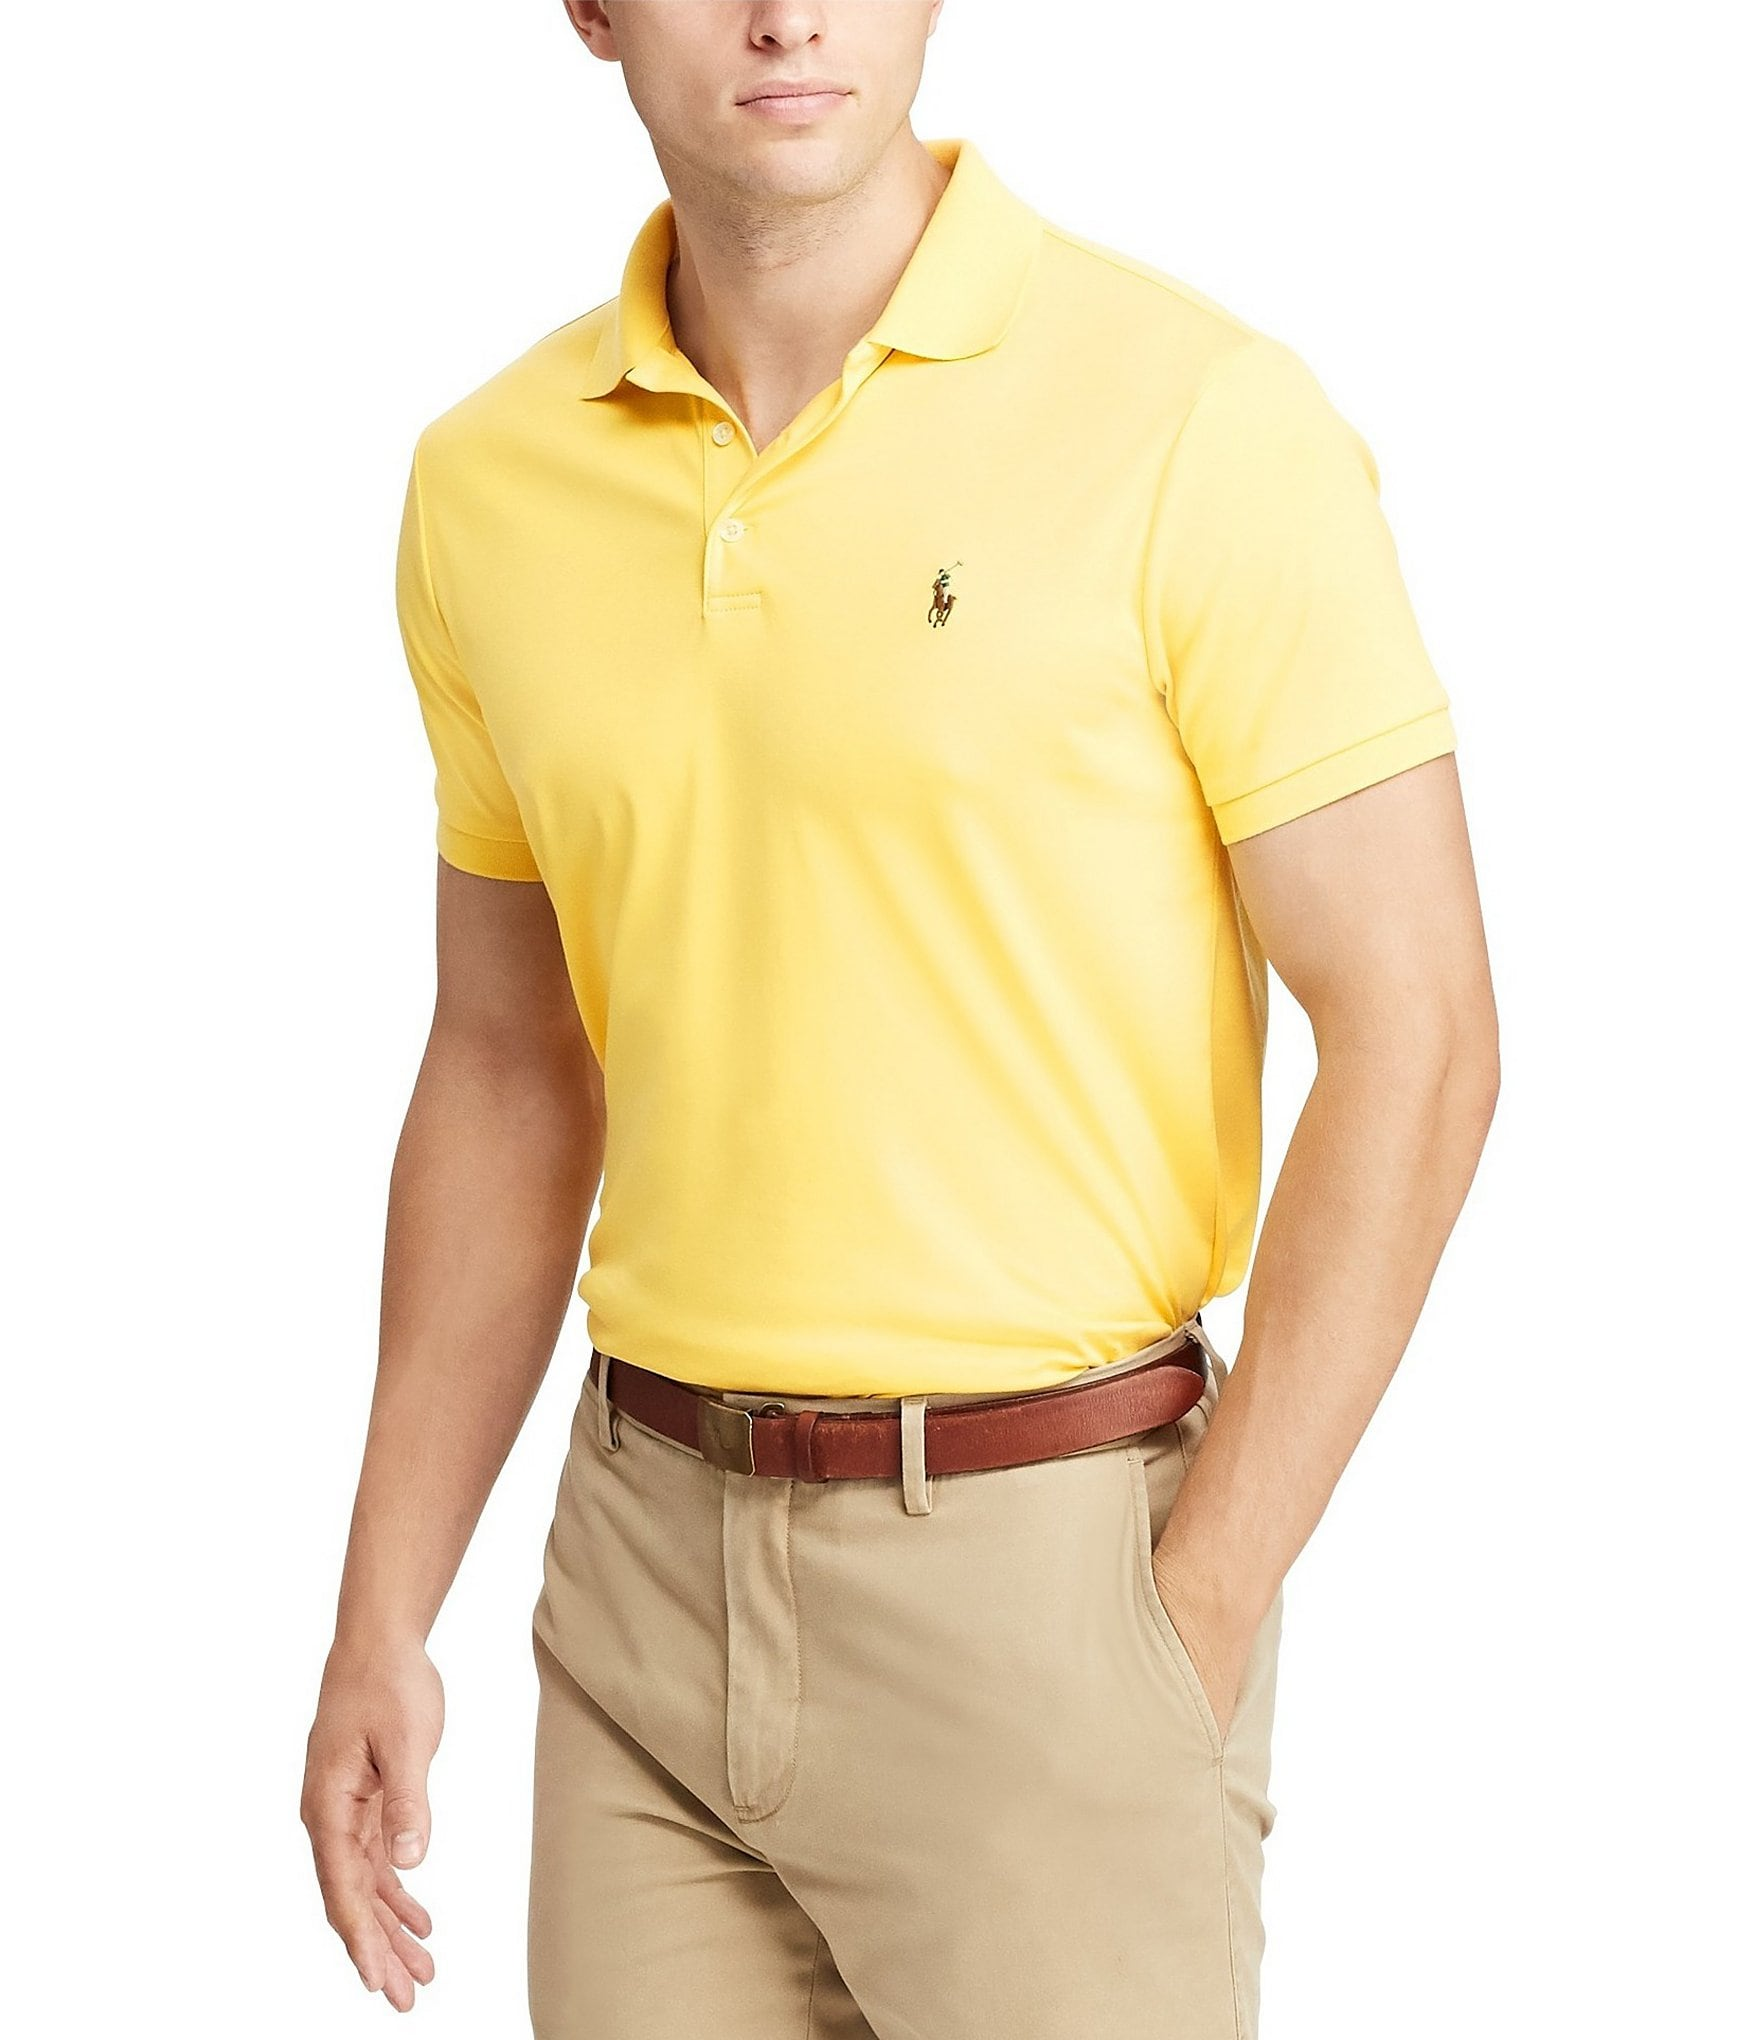 087c5d2d59f7 Yellow Men s Casual Polo Shirts